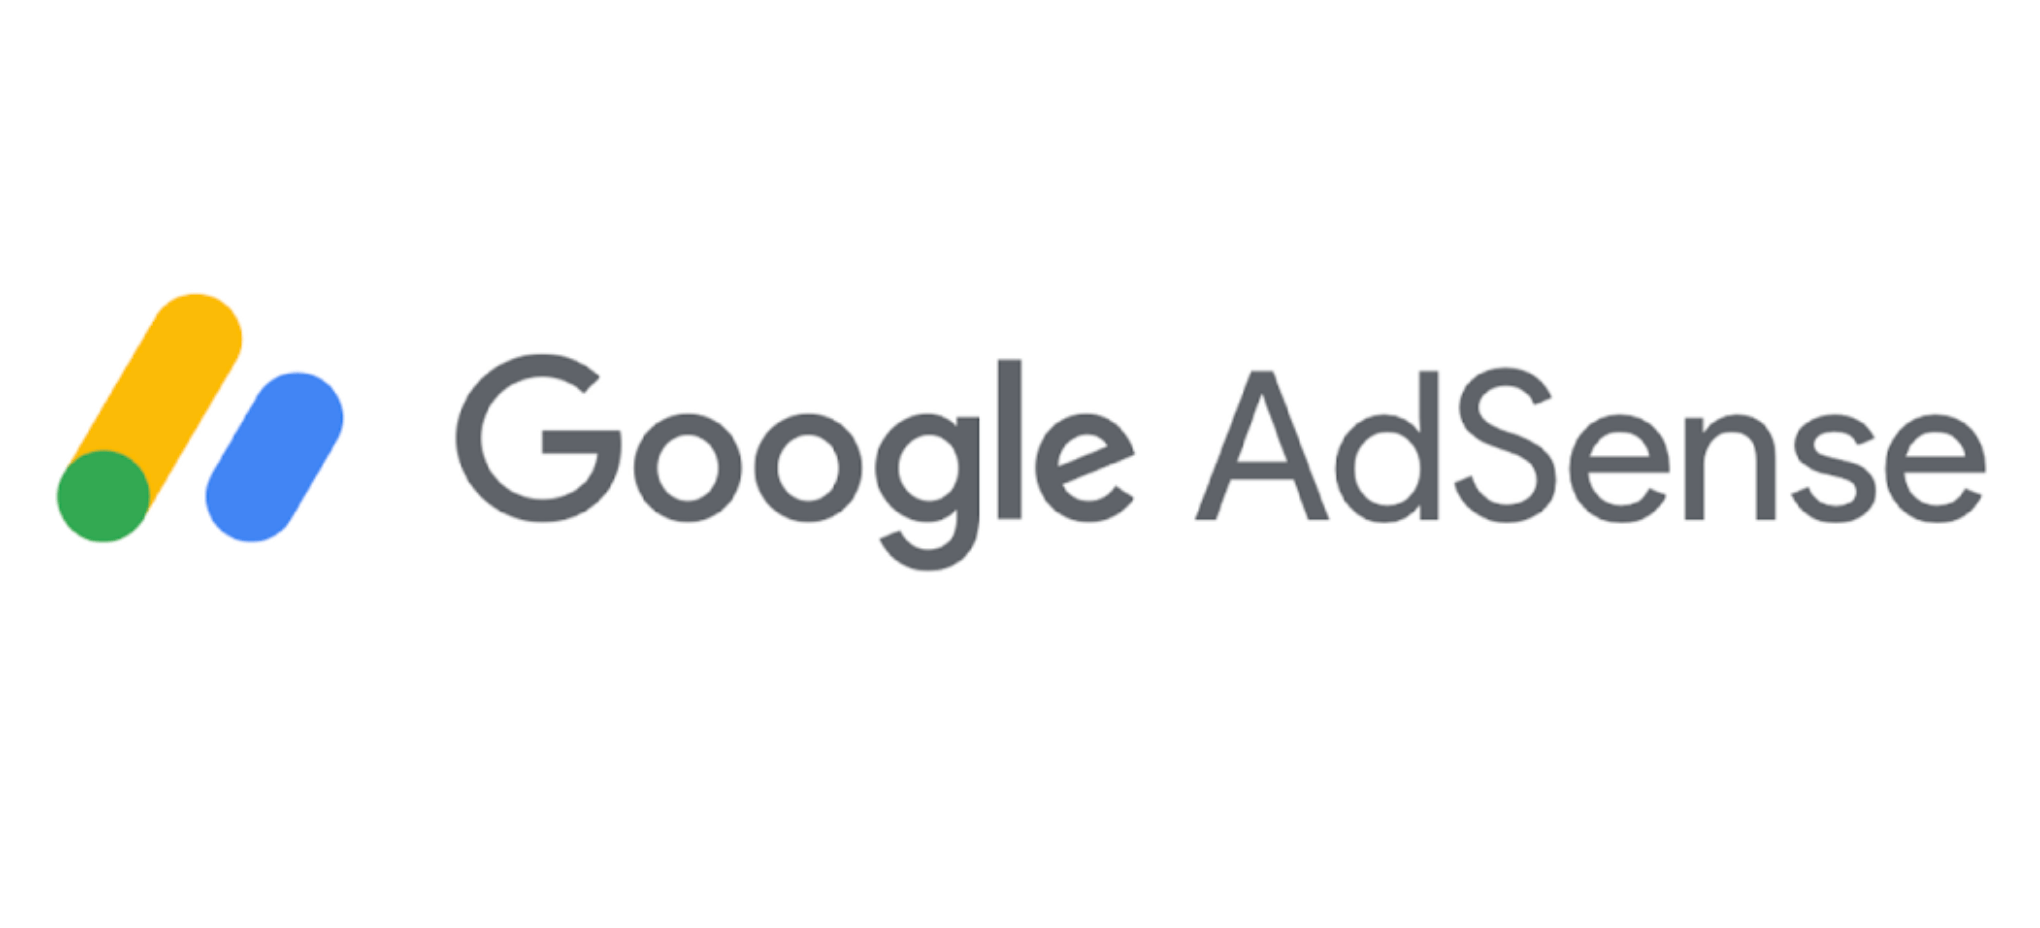 How to Earn Money with Google Adsense. My Step-by-Step Guide